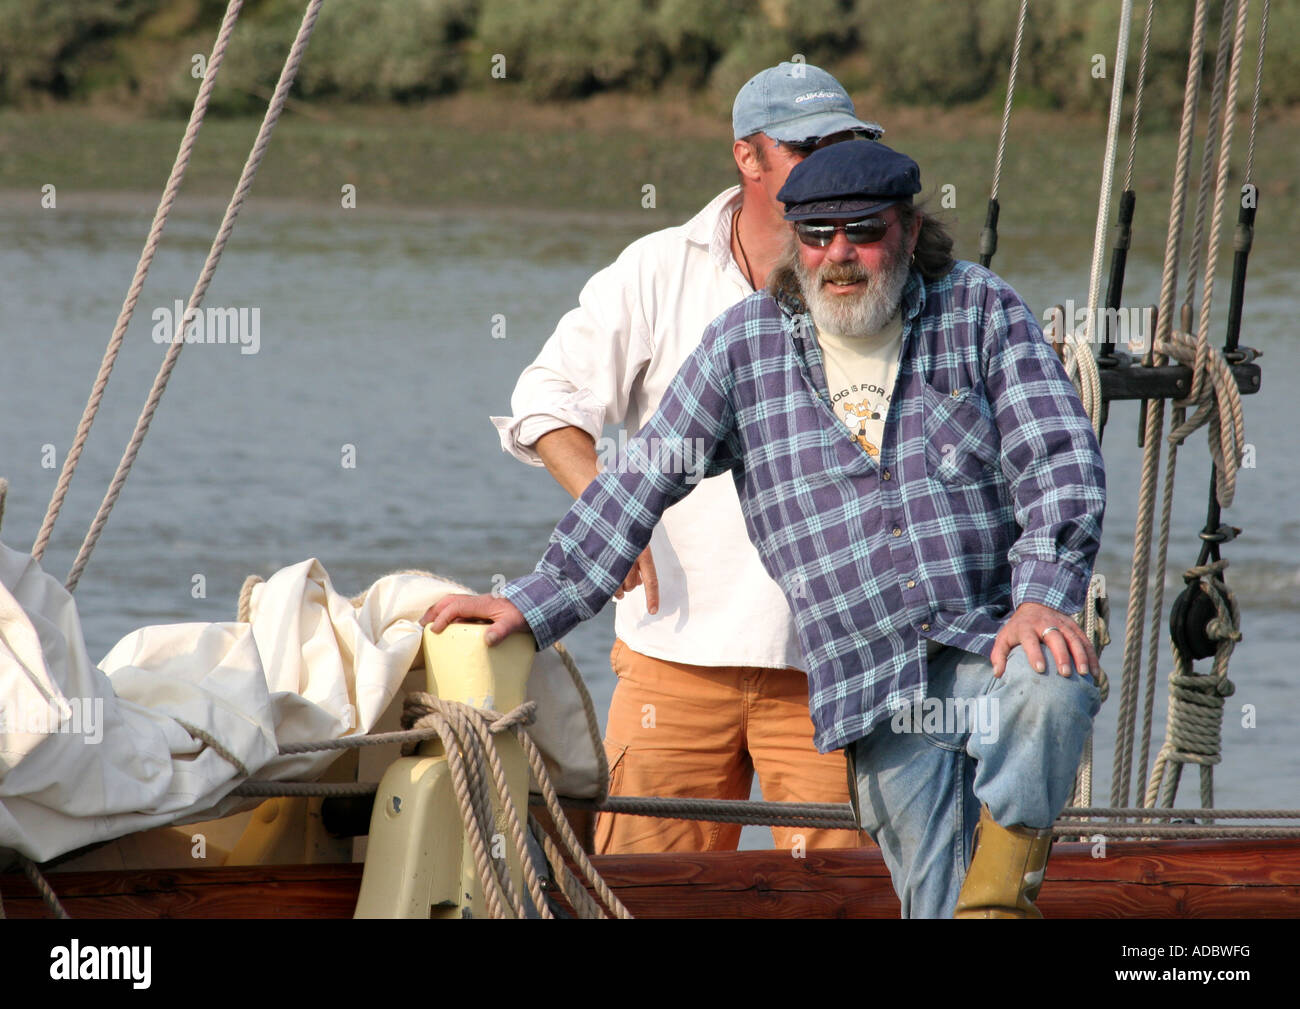 Oyster Smack 92CK Our Boys at Maldon - Stock Image